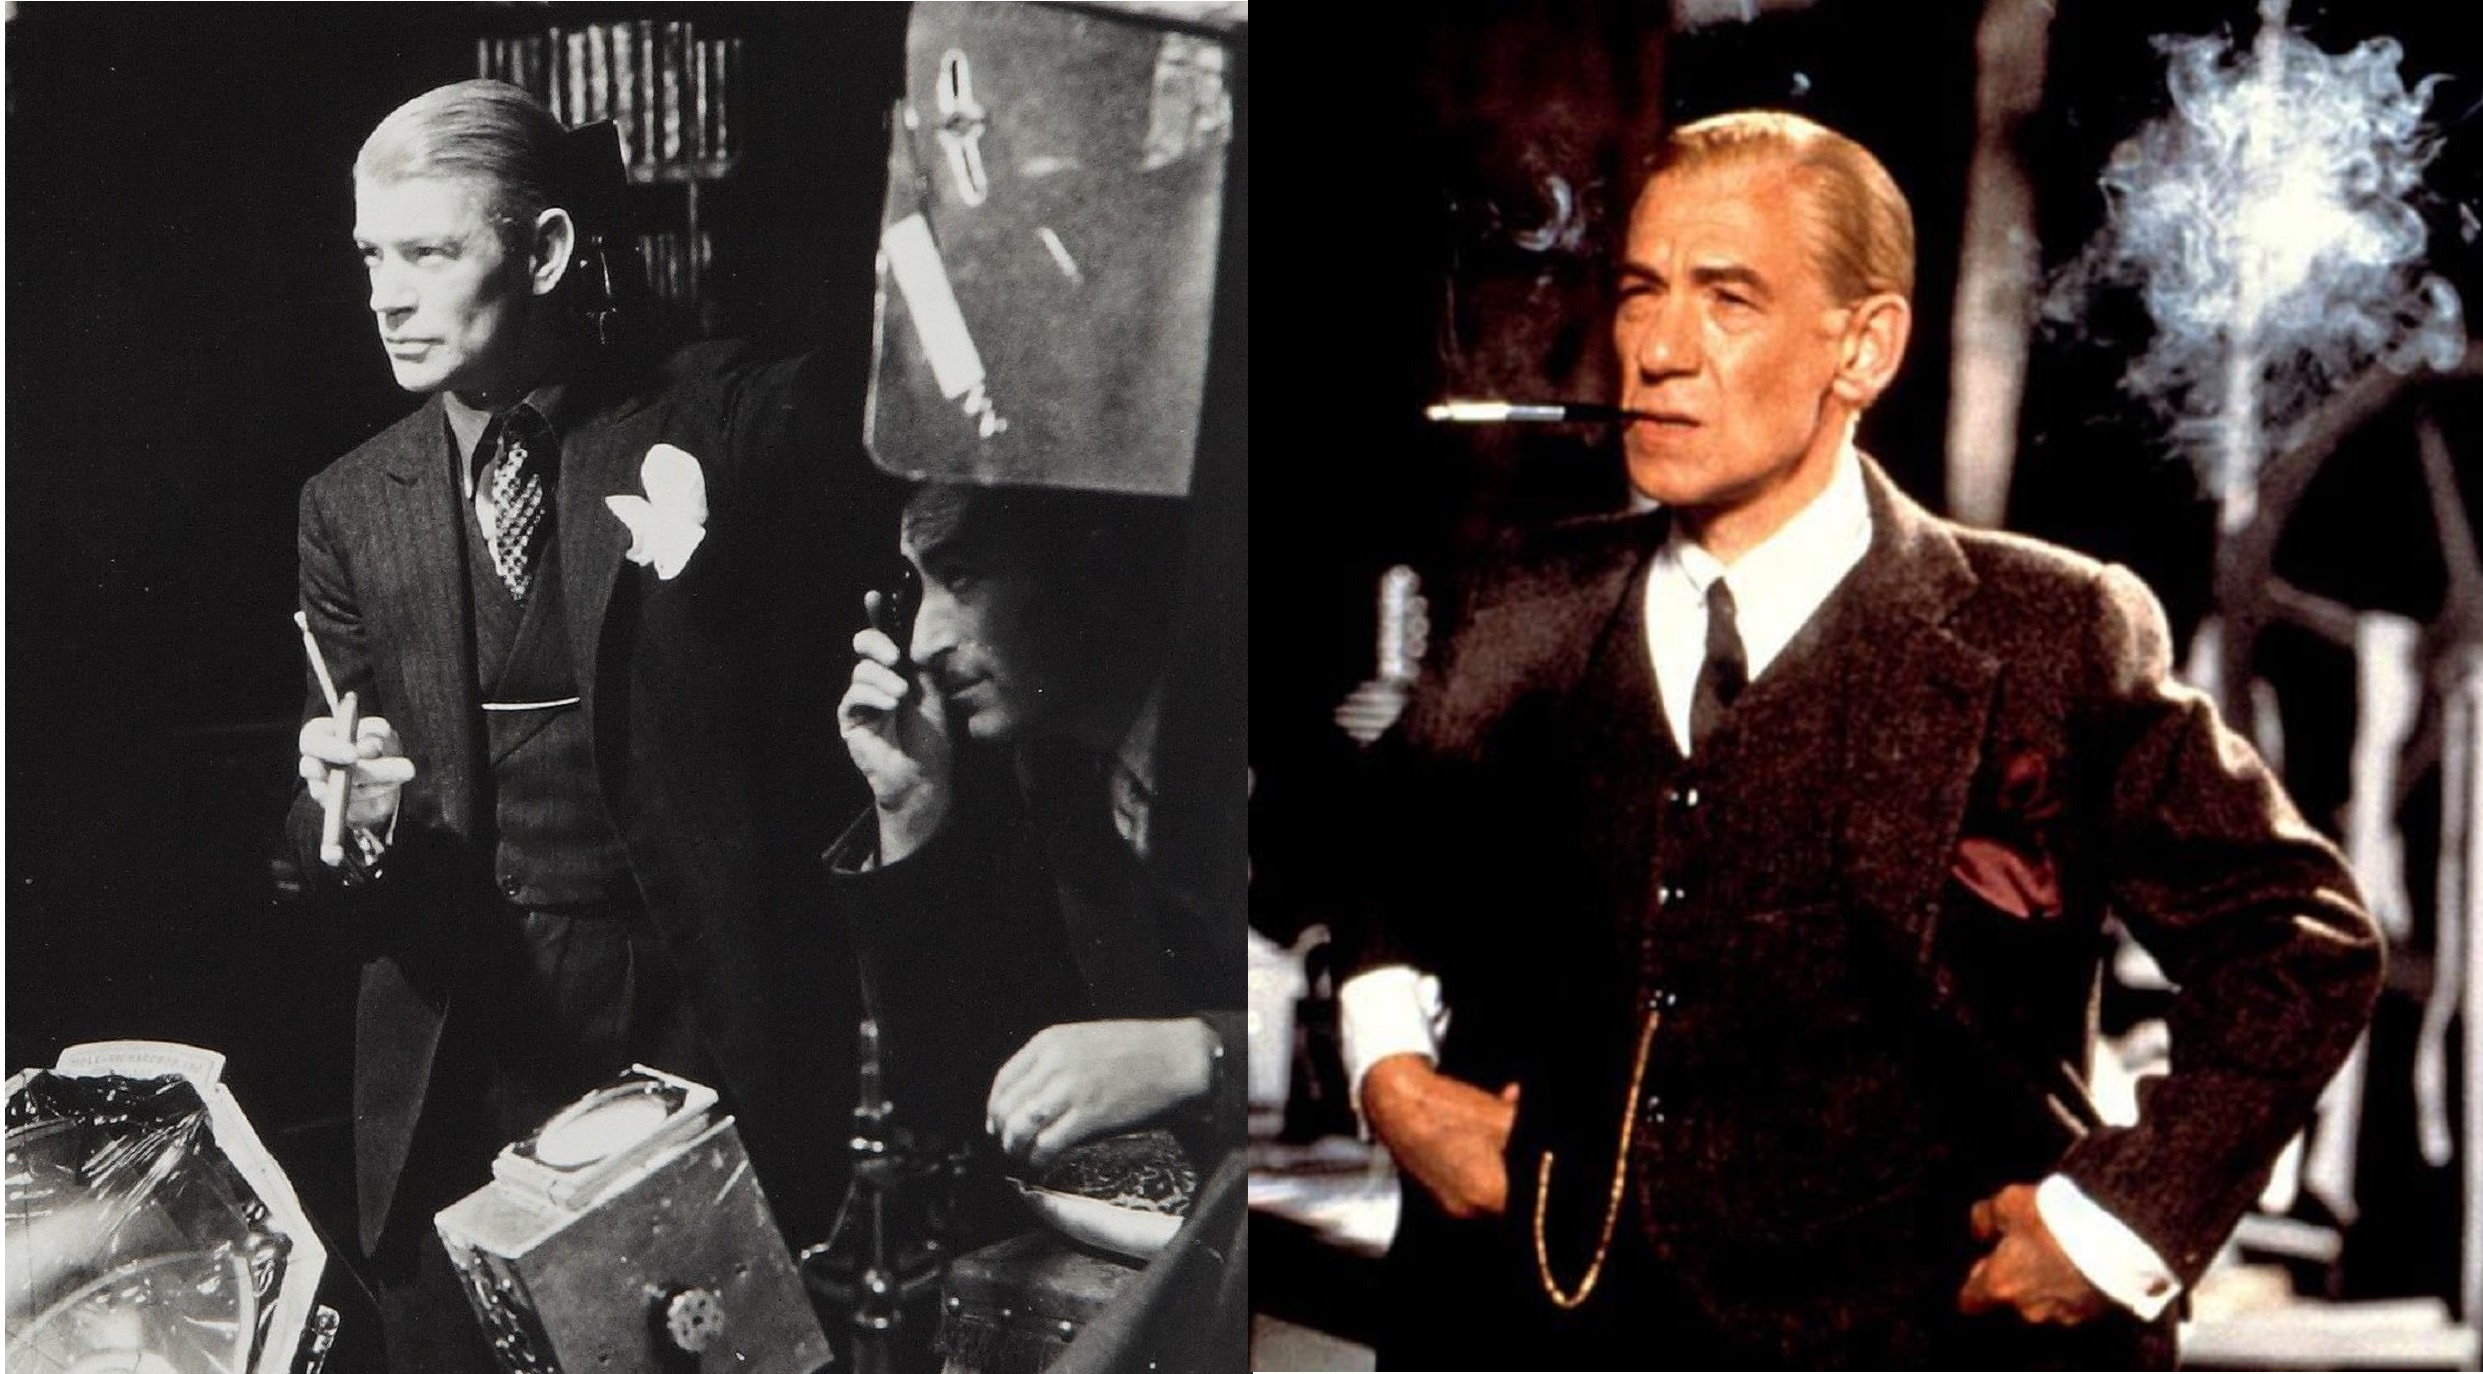 James Whale vs Ian McKellen in Gods and Monsters (1998)